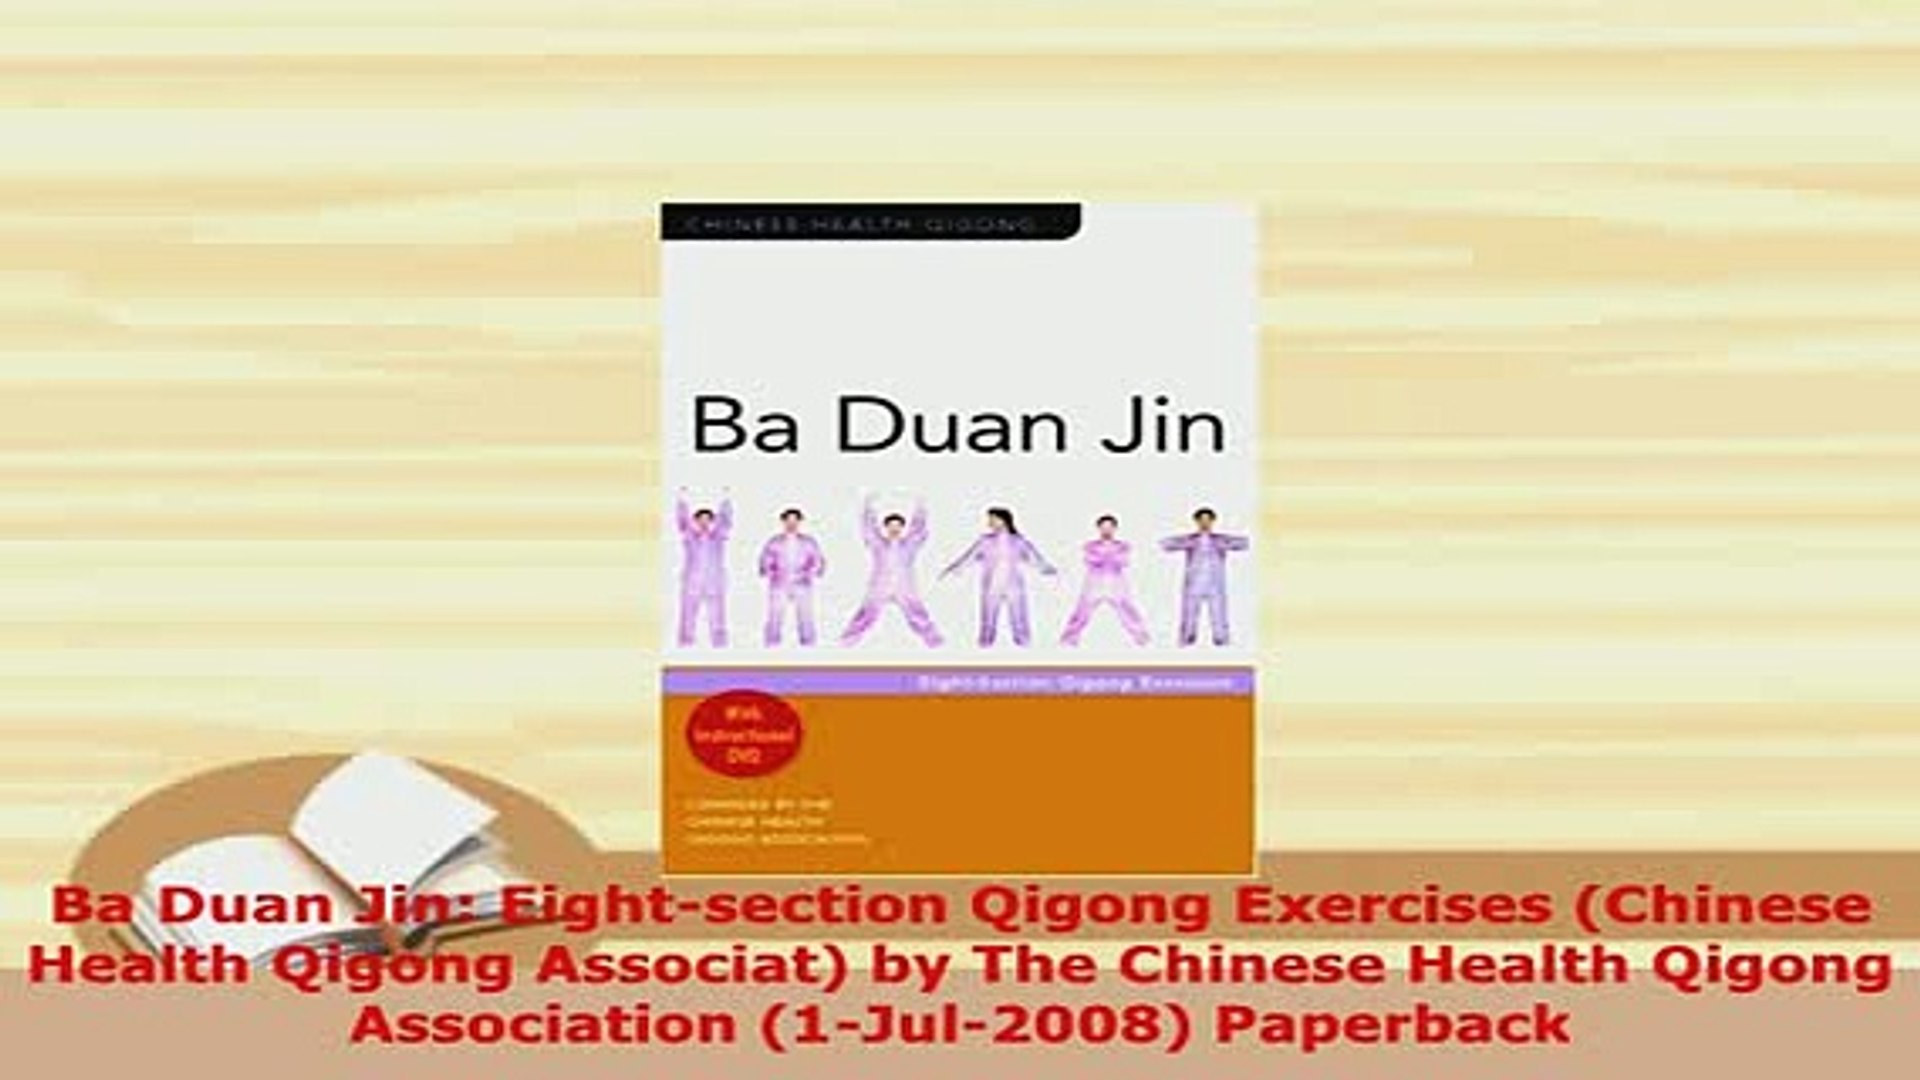 Download Ba Duan Jin Eightsection Qigong Exercises Chinese Health Qigong  Associat by The Read Online